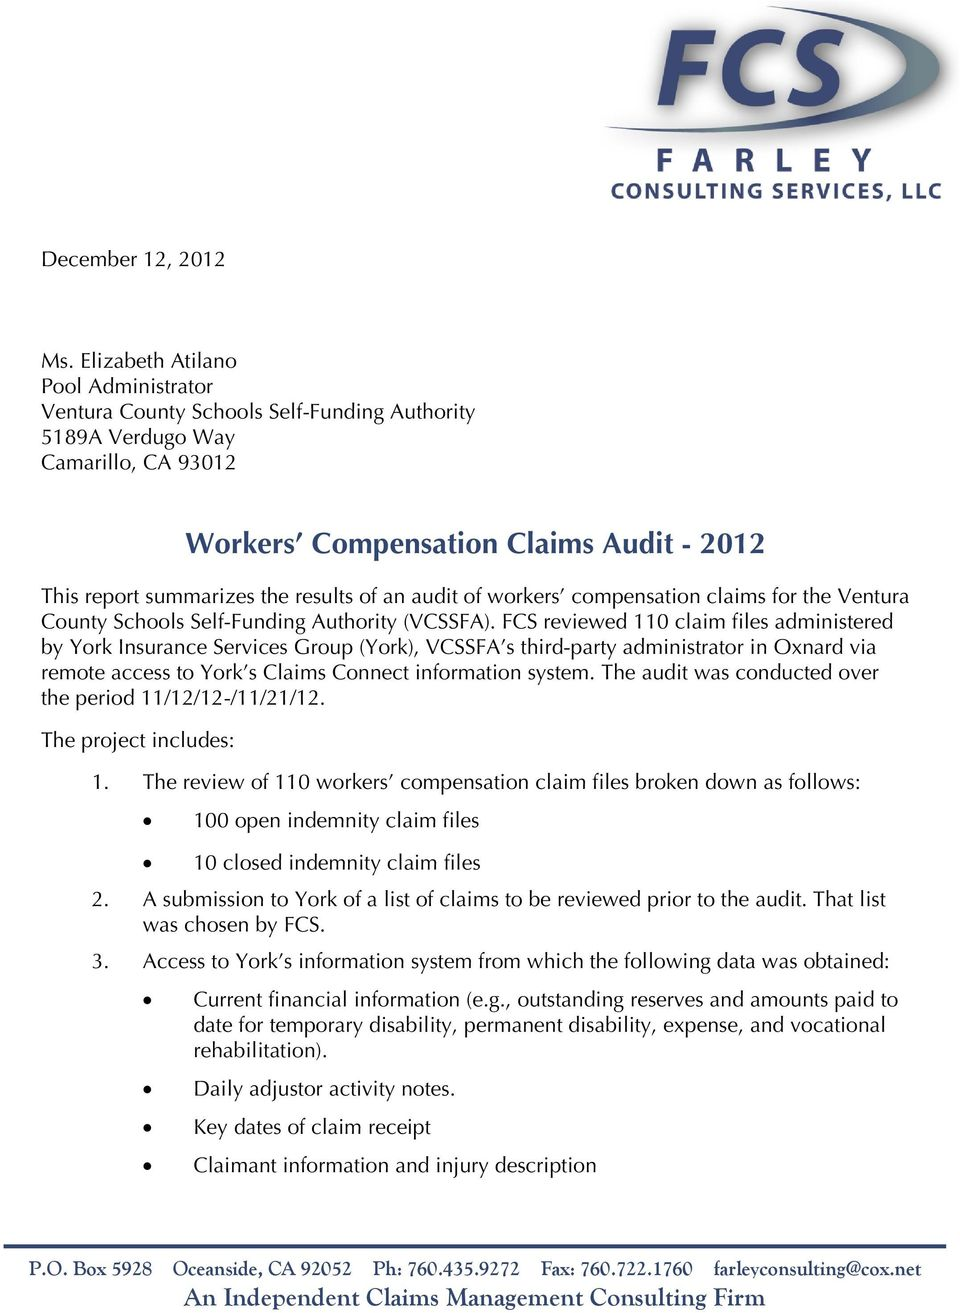 an audit of workers compensation claims for the Ventura County Schools Self-Funding Authority (VCSSFA).